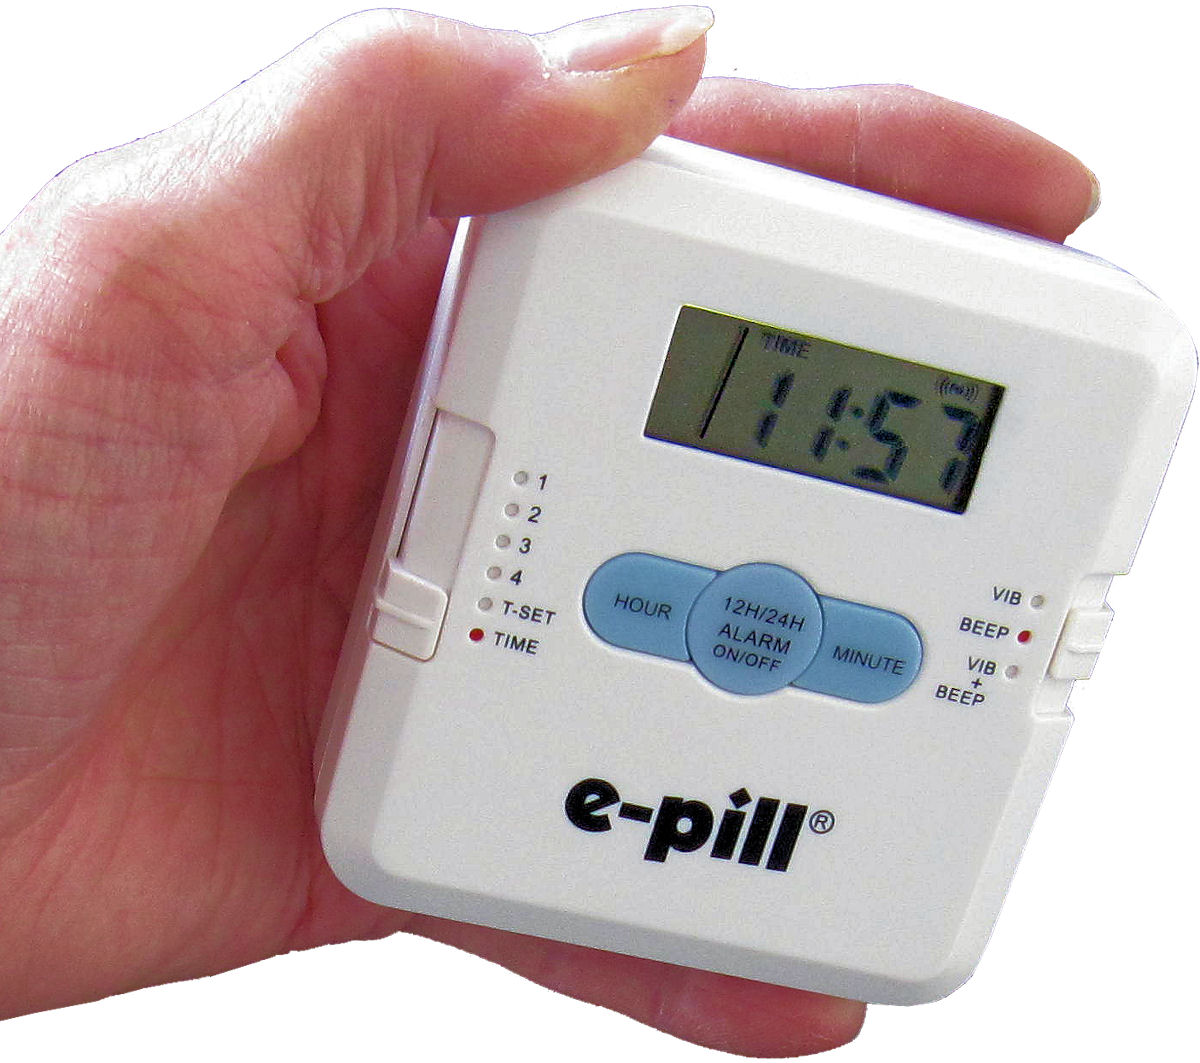 Electronic reminder system helps patients take their pills